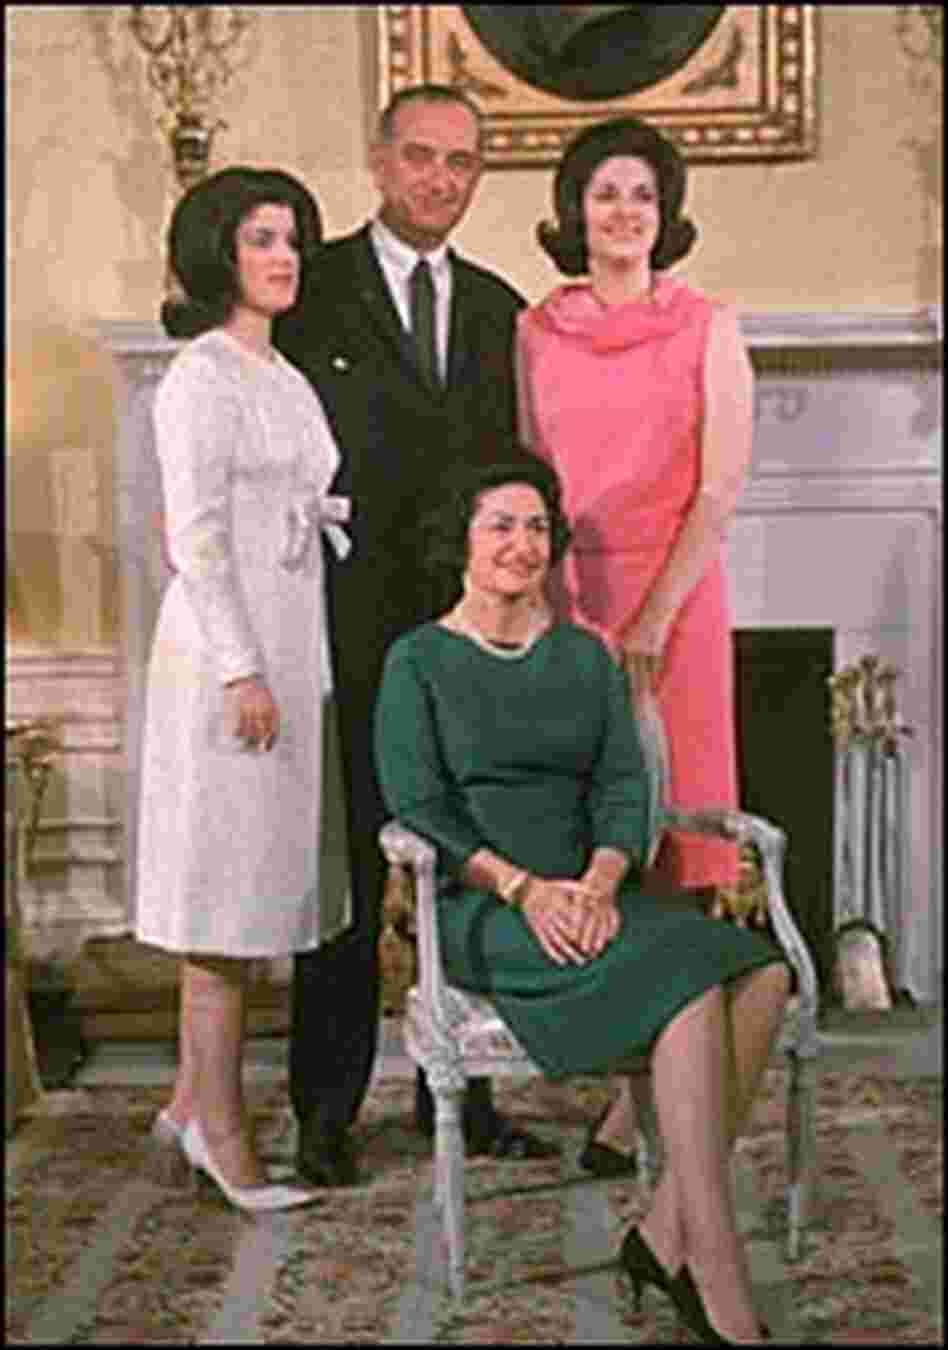 Johnson family photo taken circa 1966